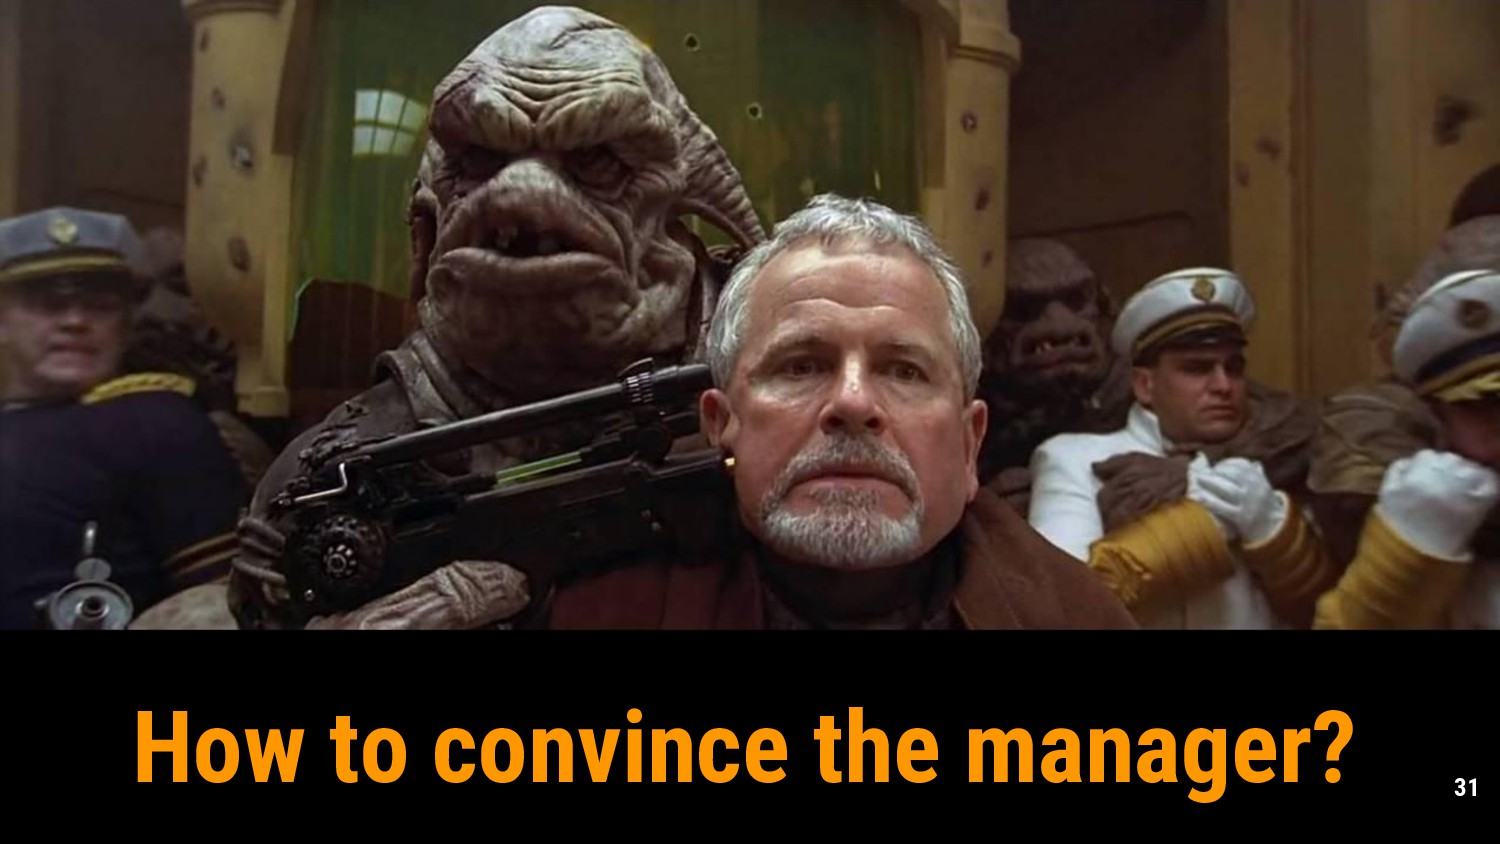 31 How to convince the manager?